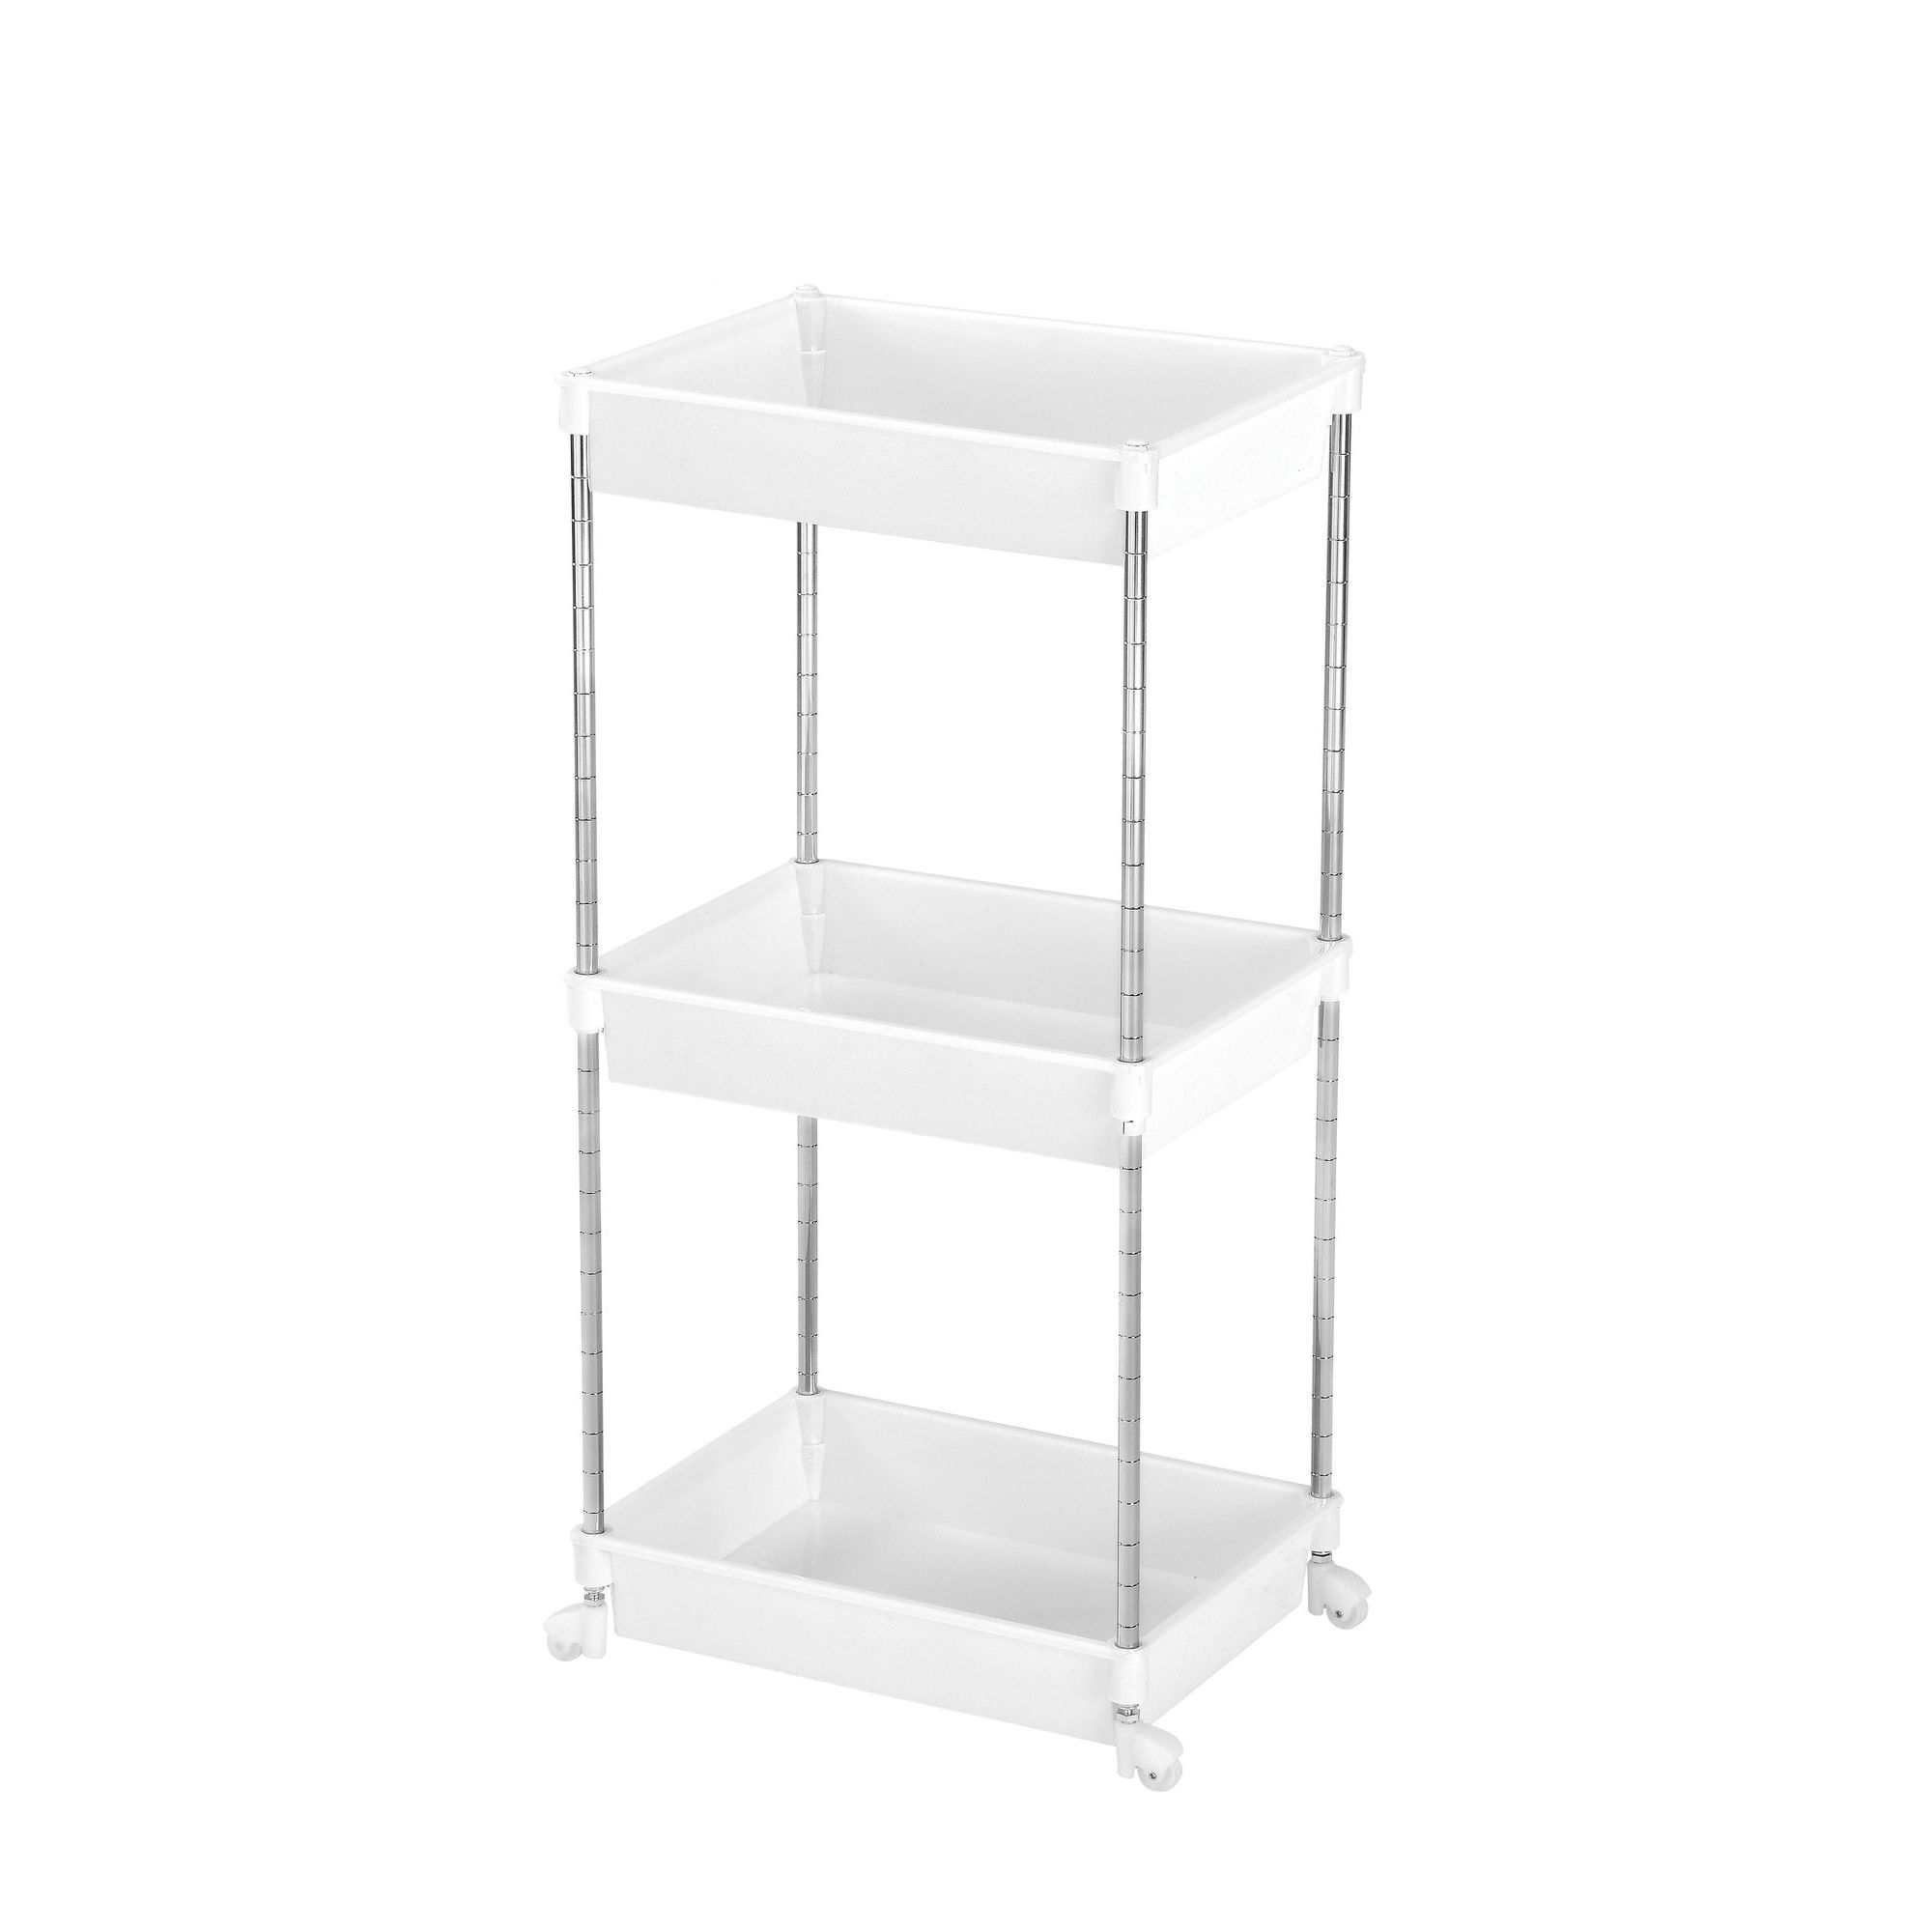 Premier Housewares 3 Tier Shelf Unit in Chrome / White